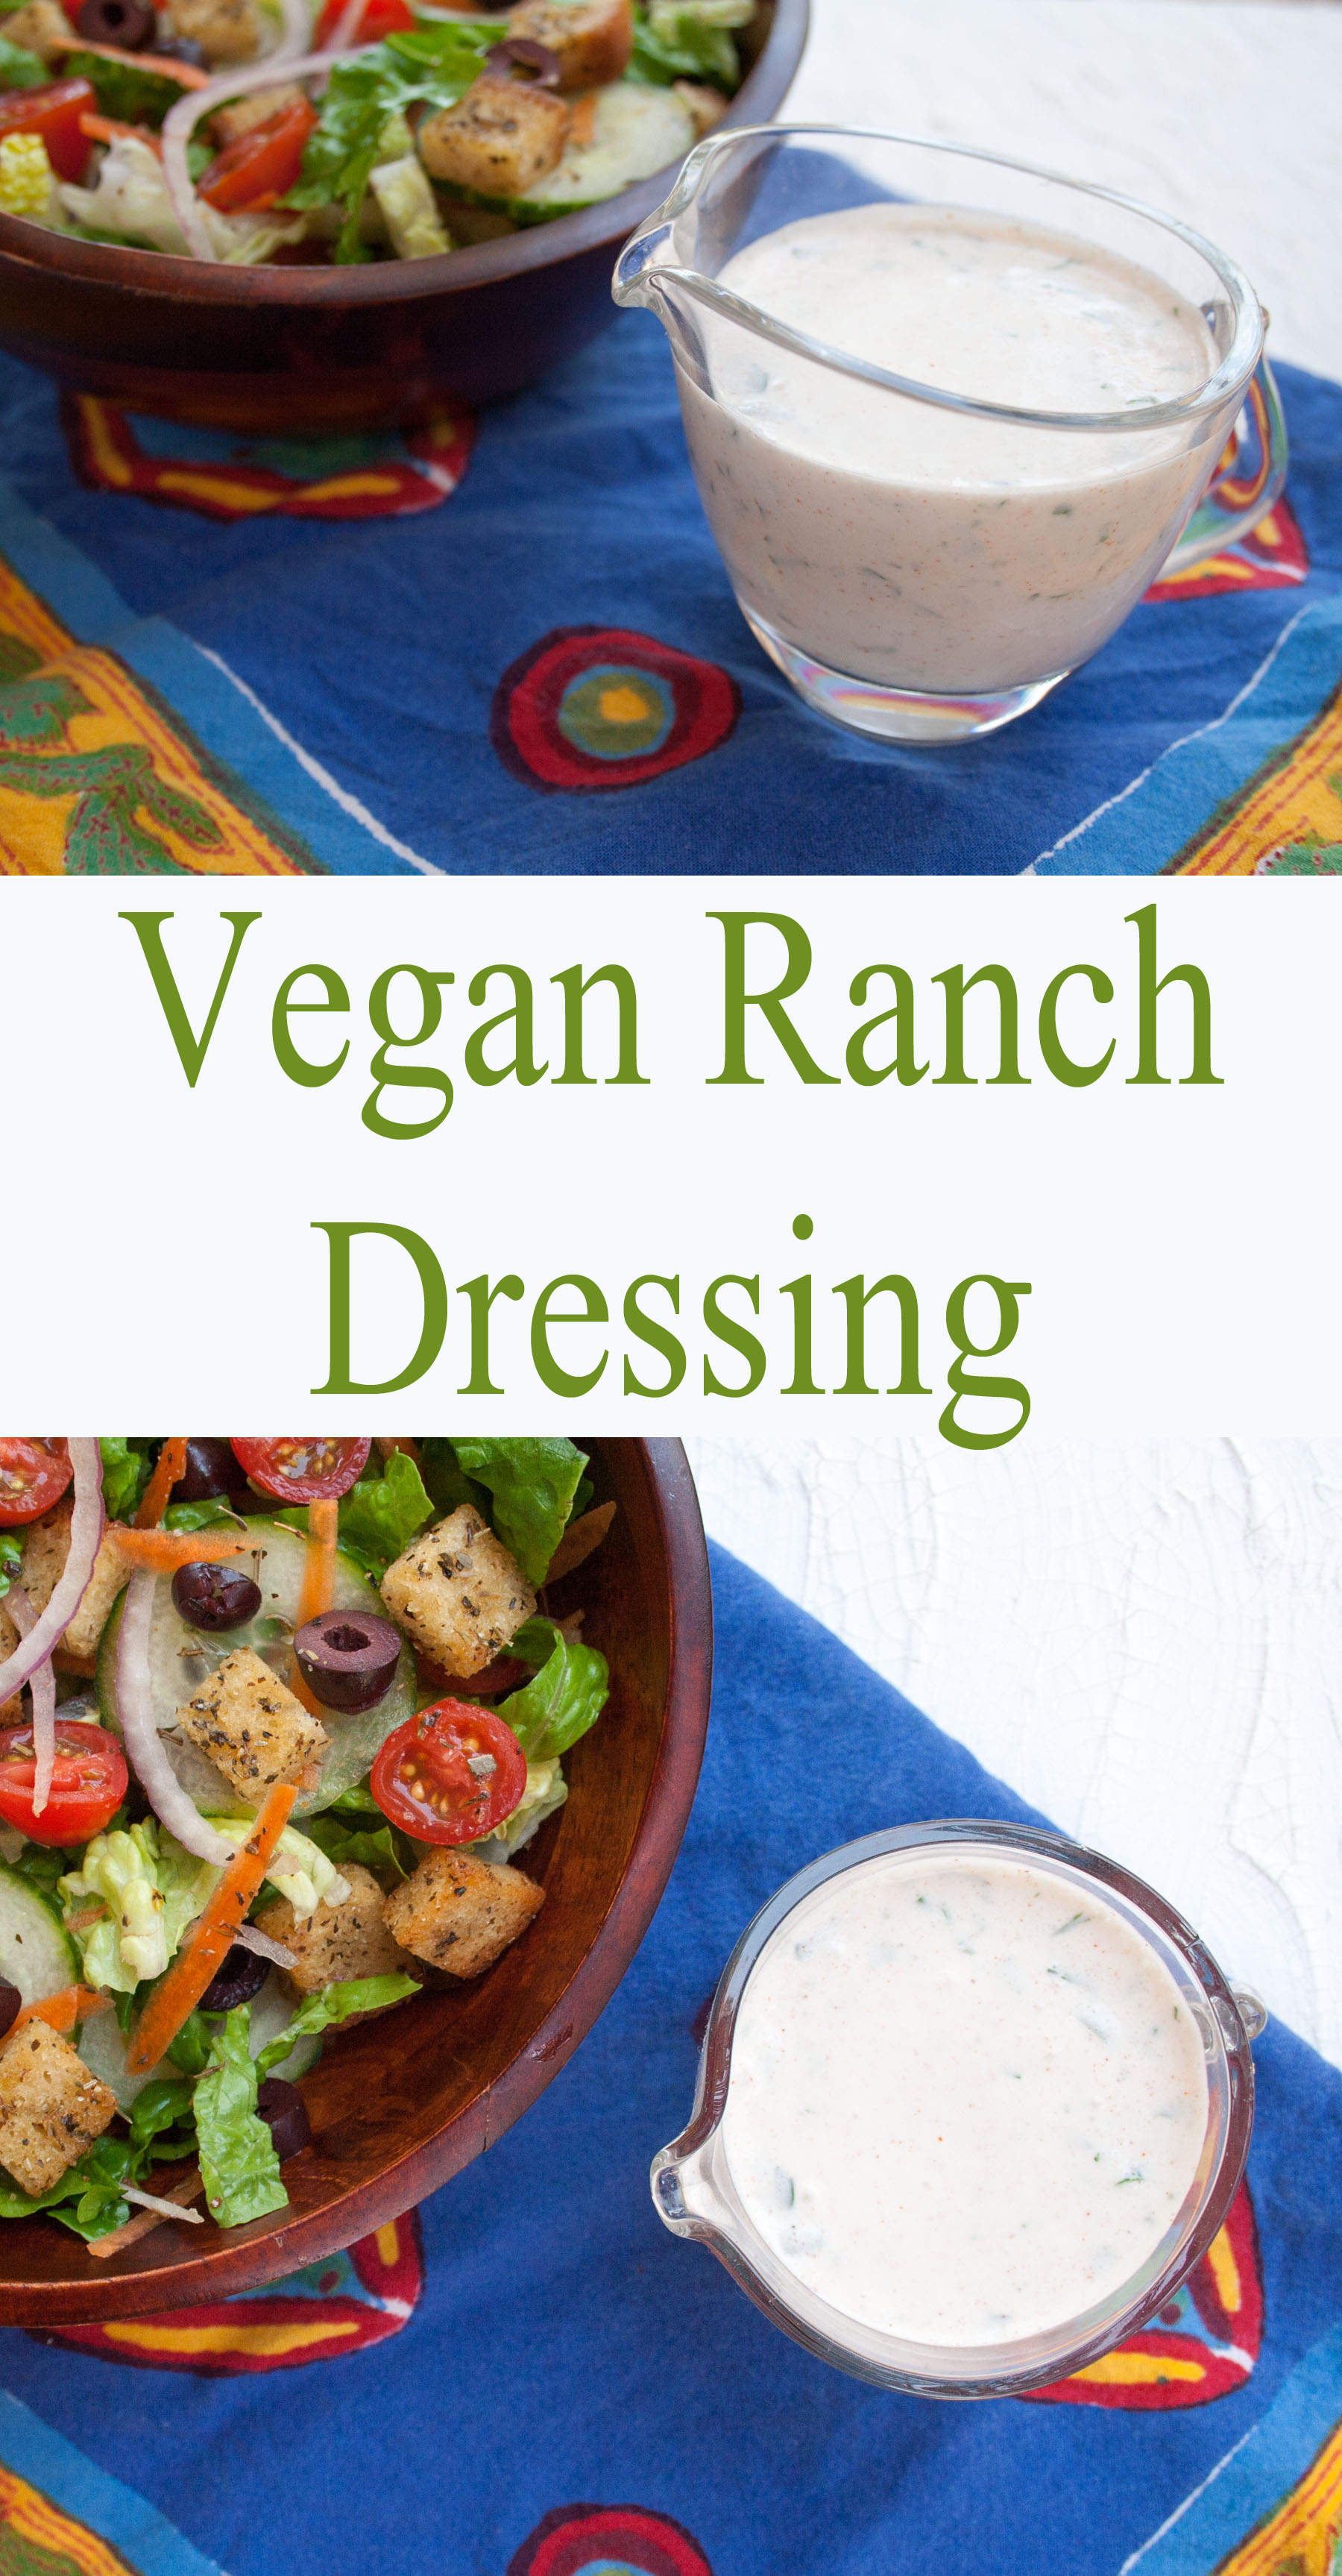 Vegan Ranch Dressing collage photo with text.